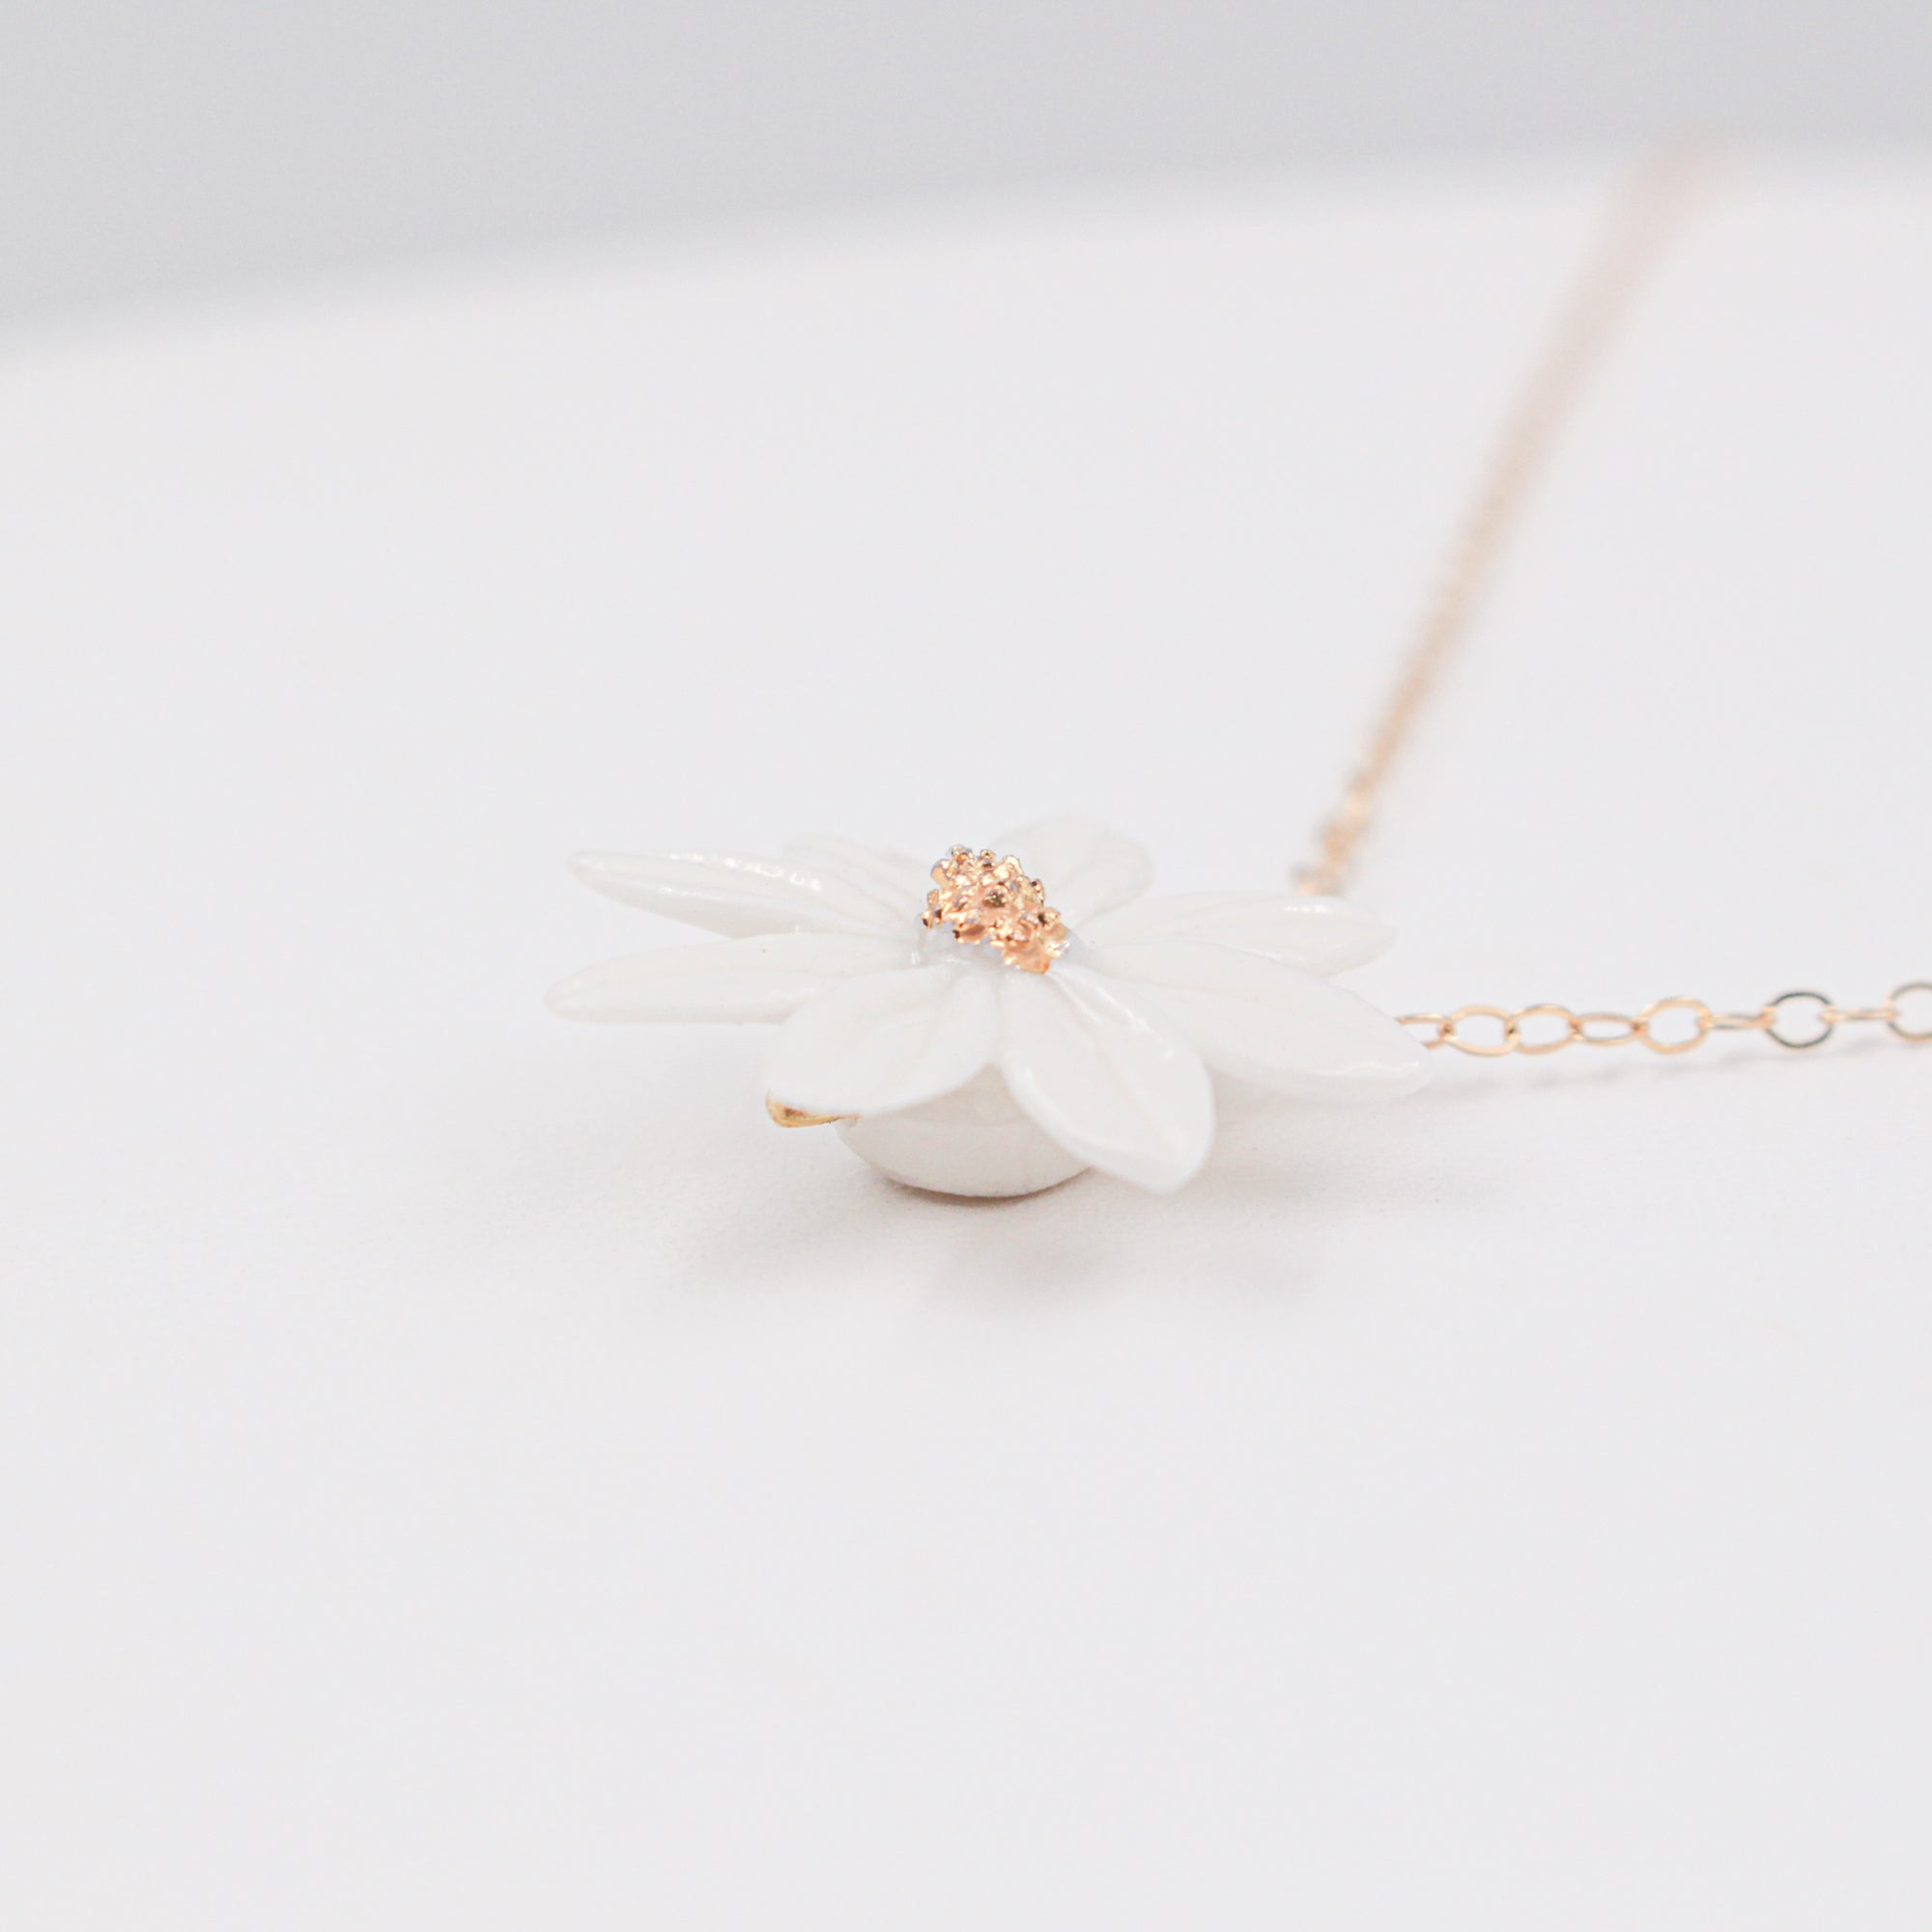 Daisy Porcelain Necklace - Minimalist Porcelain Jewelry by Alain Granell